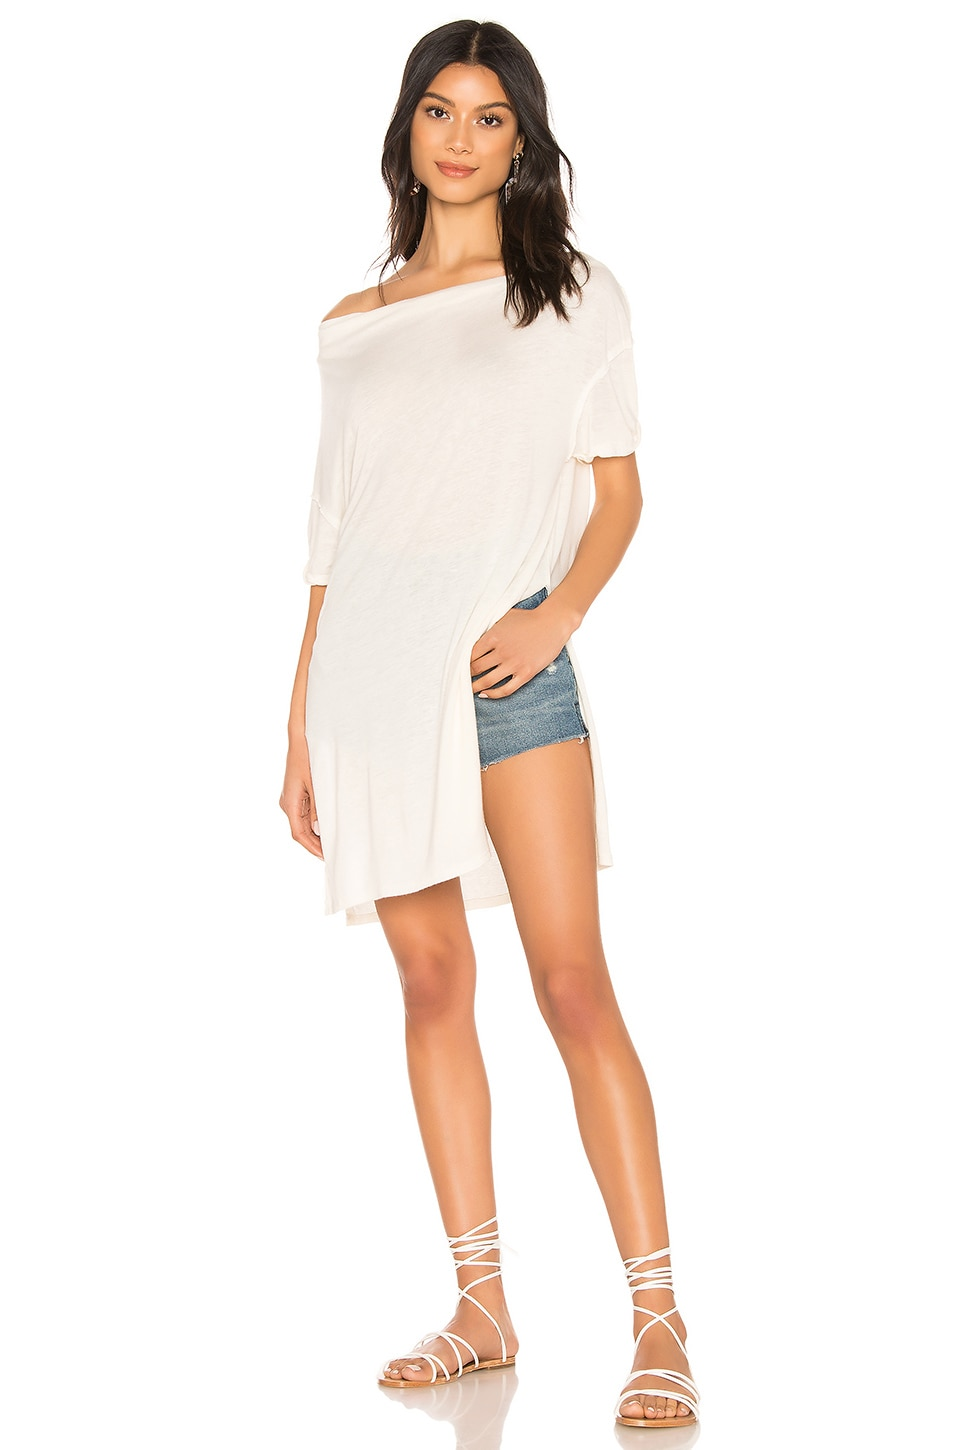 Free People Take It Easy Tee in Ivory